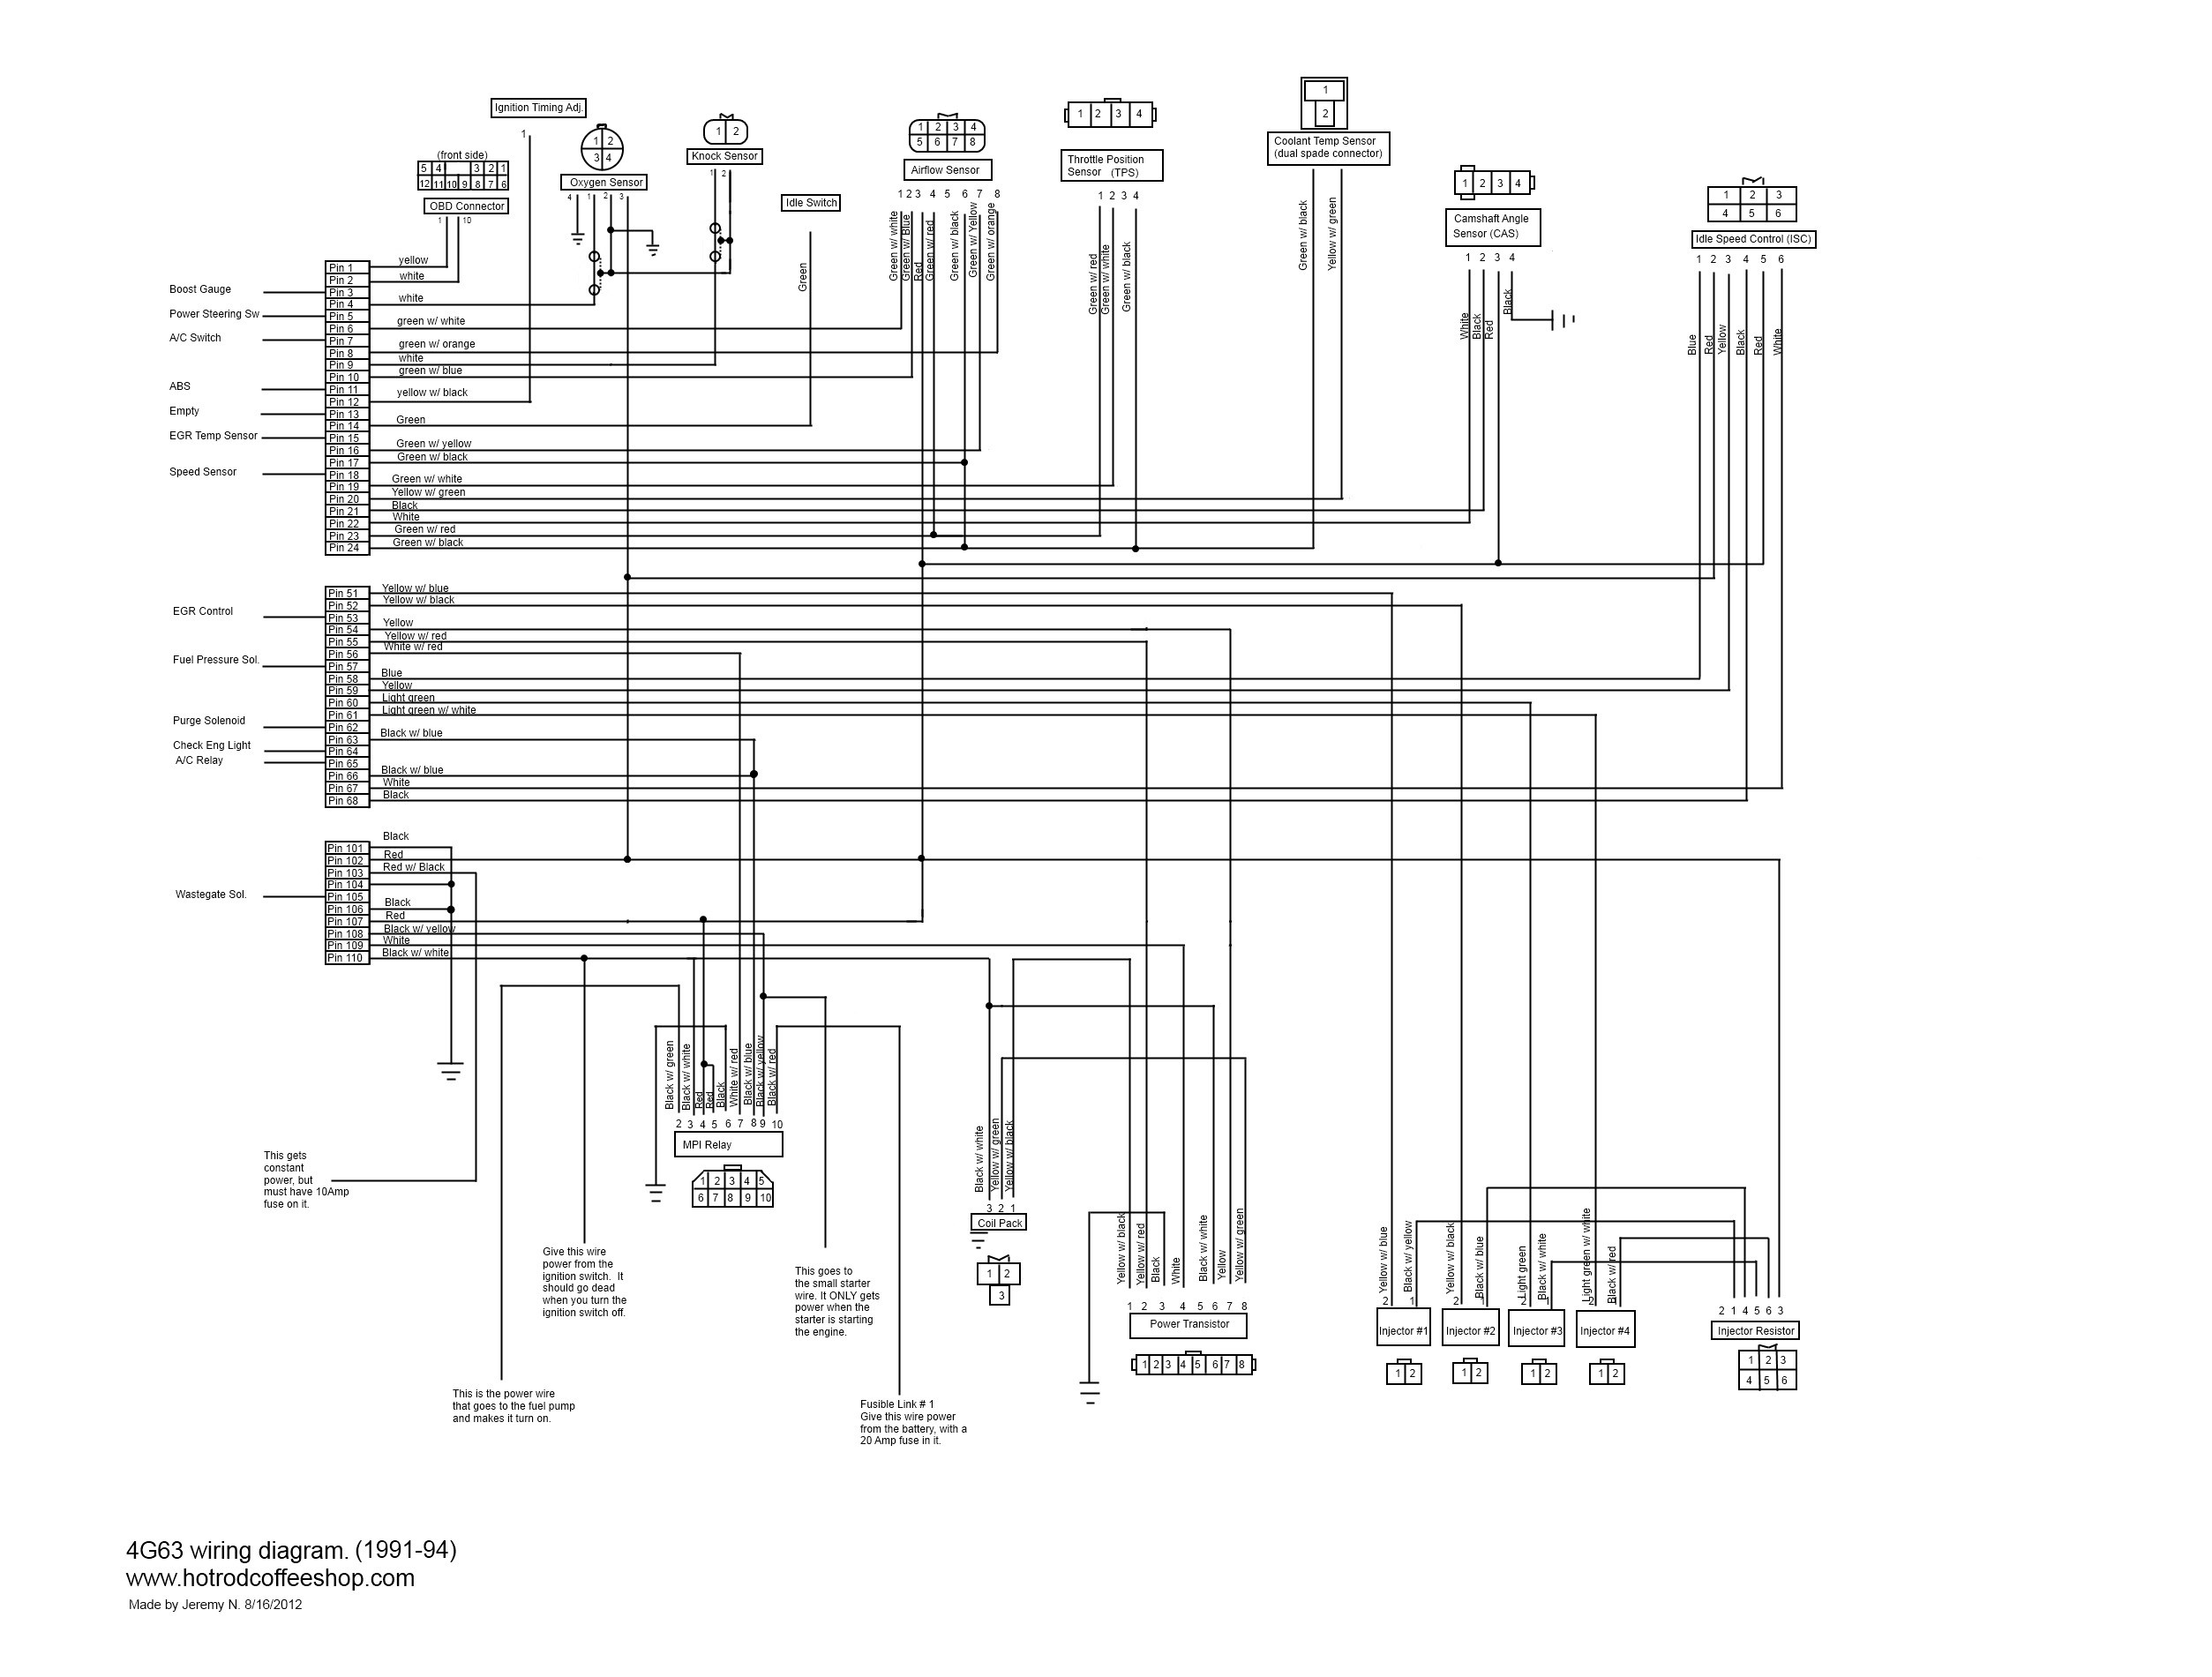 Gm Ls3 Engine Wiring Diagram, Gm, Free Engine Image For